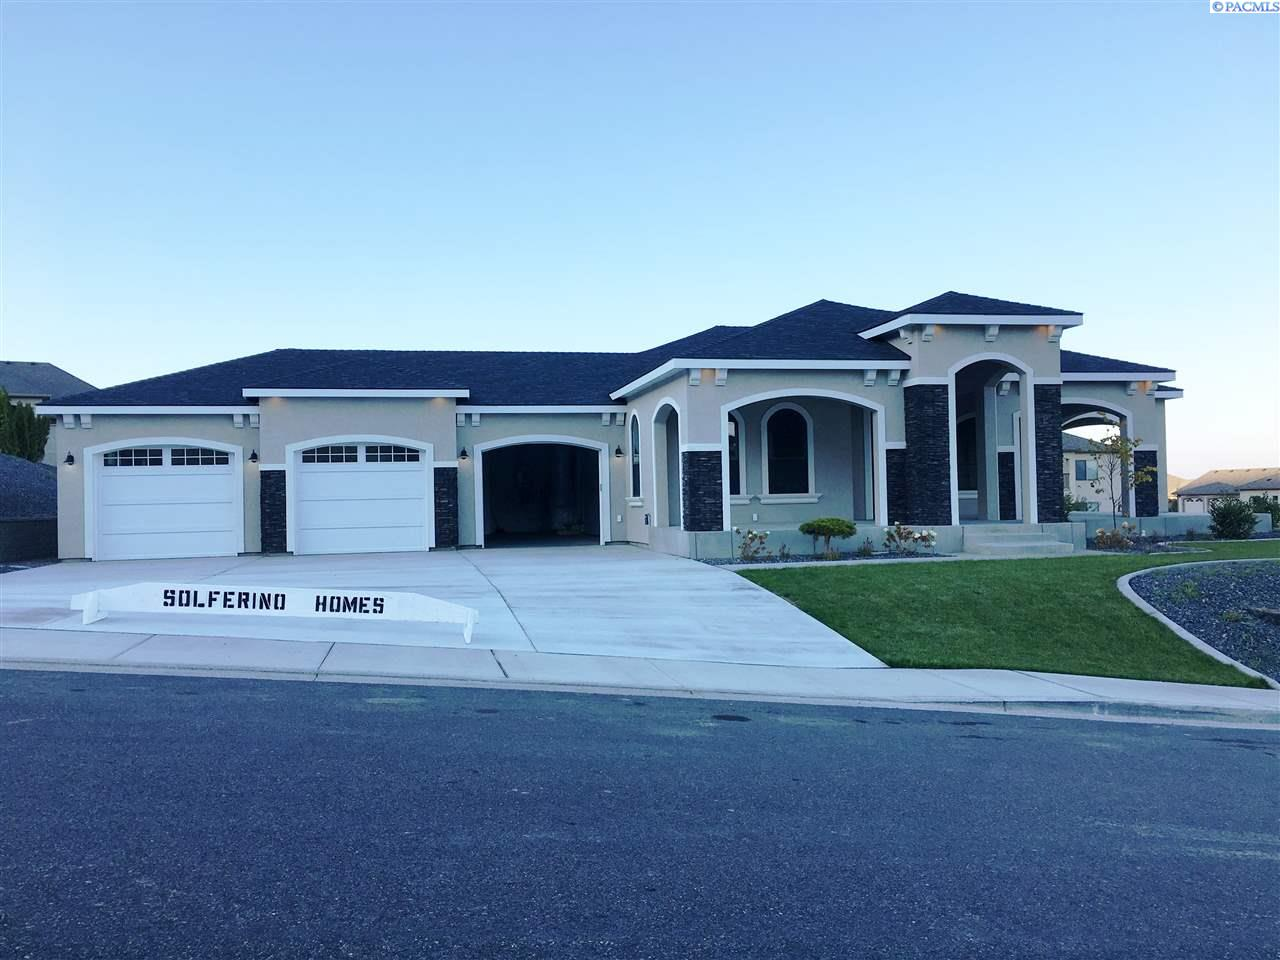 Single Family Home for Sale at 1413 Meadow Hills Dr. 1413 Meadow Hills Dr. Richland, Washington 99352 United States